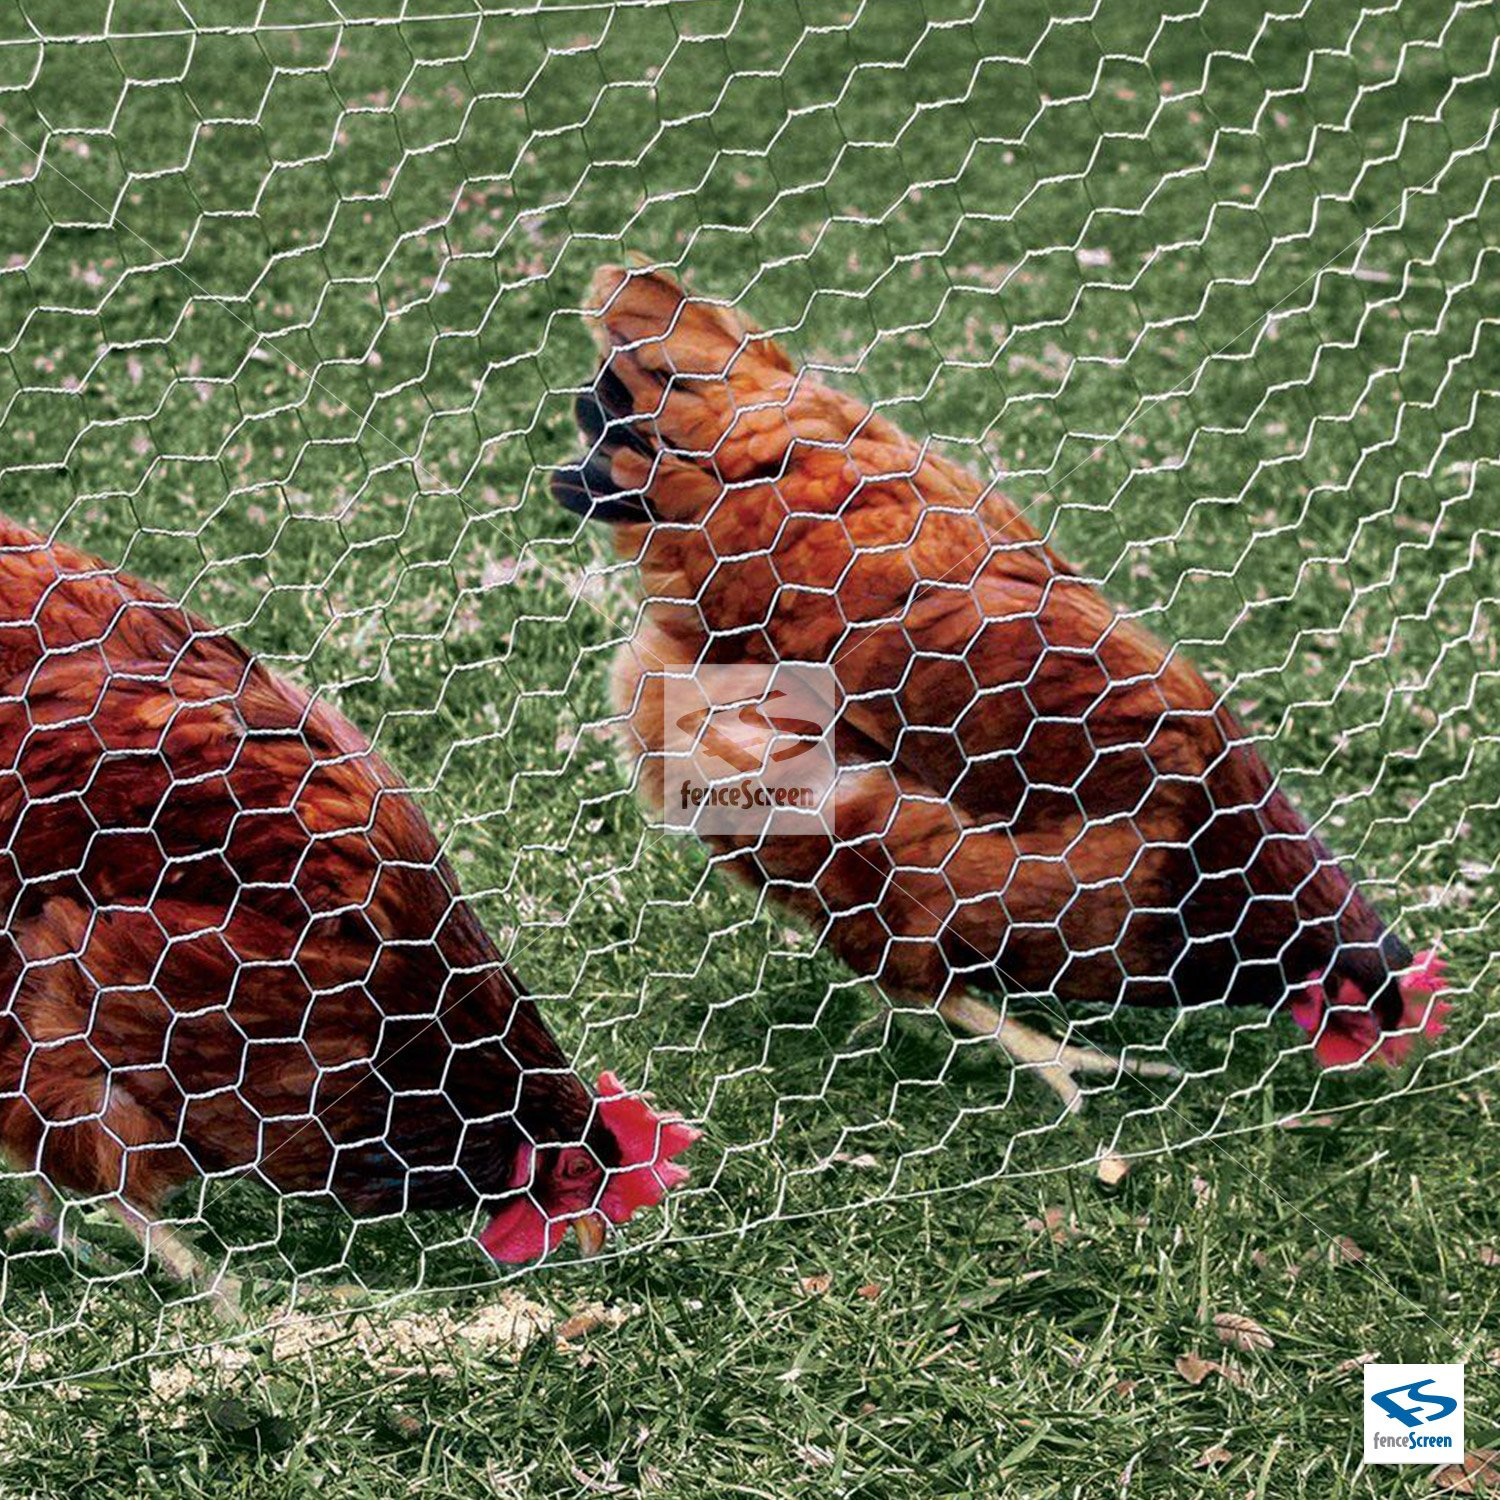 FenceScreen Galvanized Steel 1-in Mesh Chicken Wire Poultry Netting (48-in. x 50-ft.) by FenceScreen (Image #2)